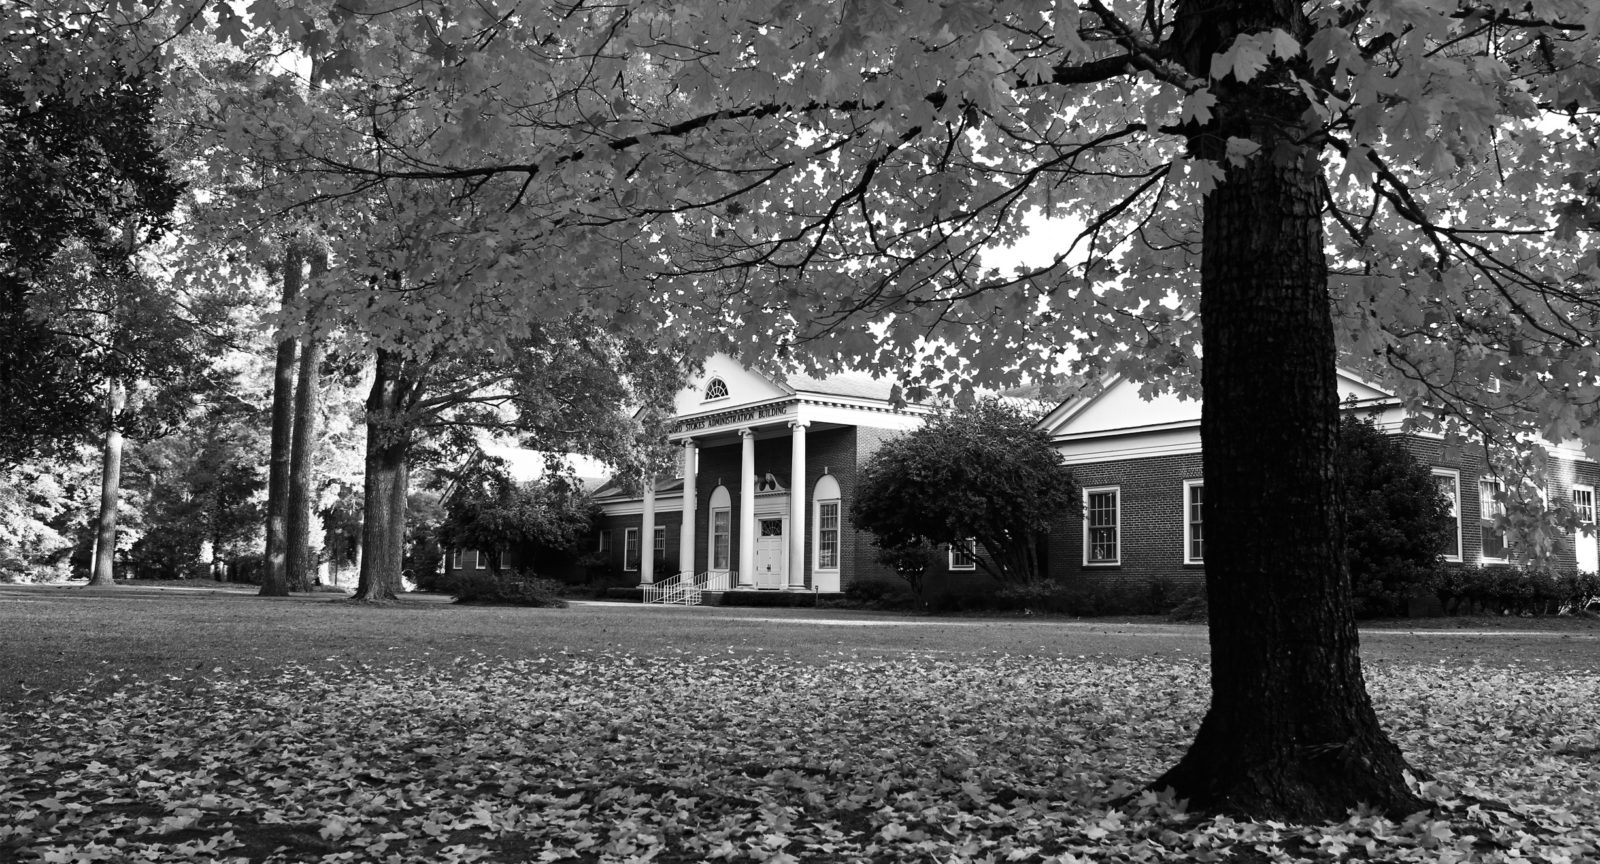 Stokes Administration Building in black and white